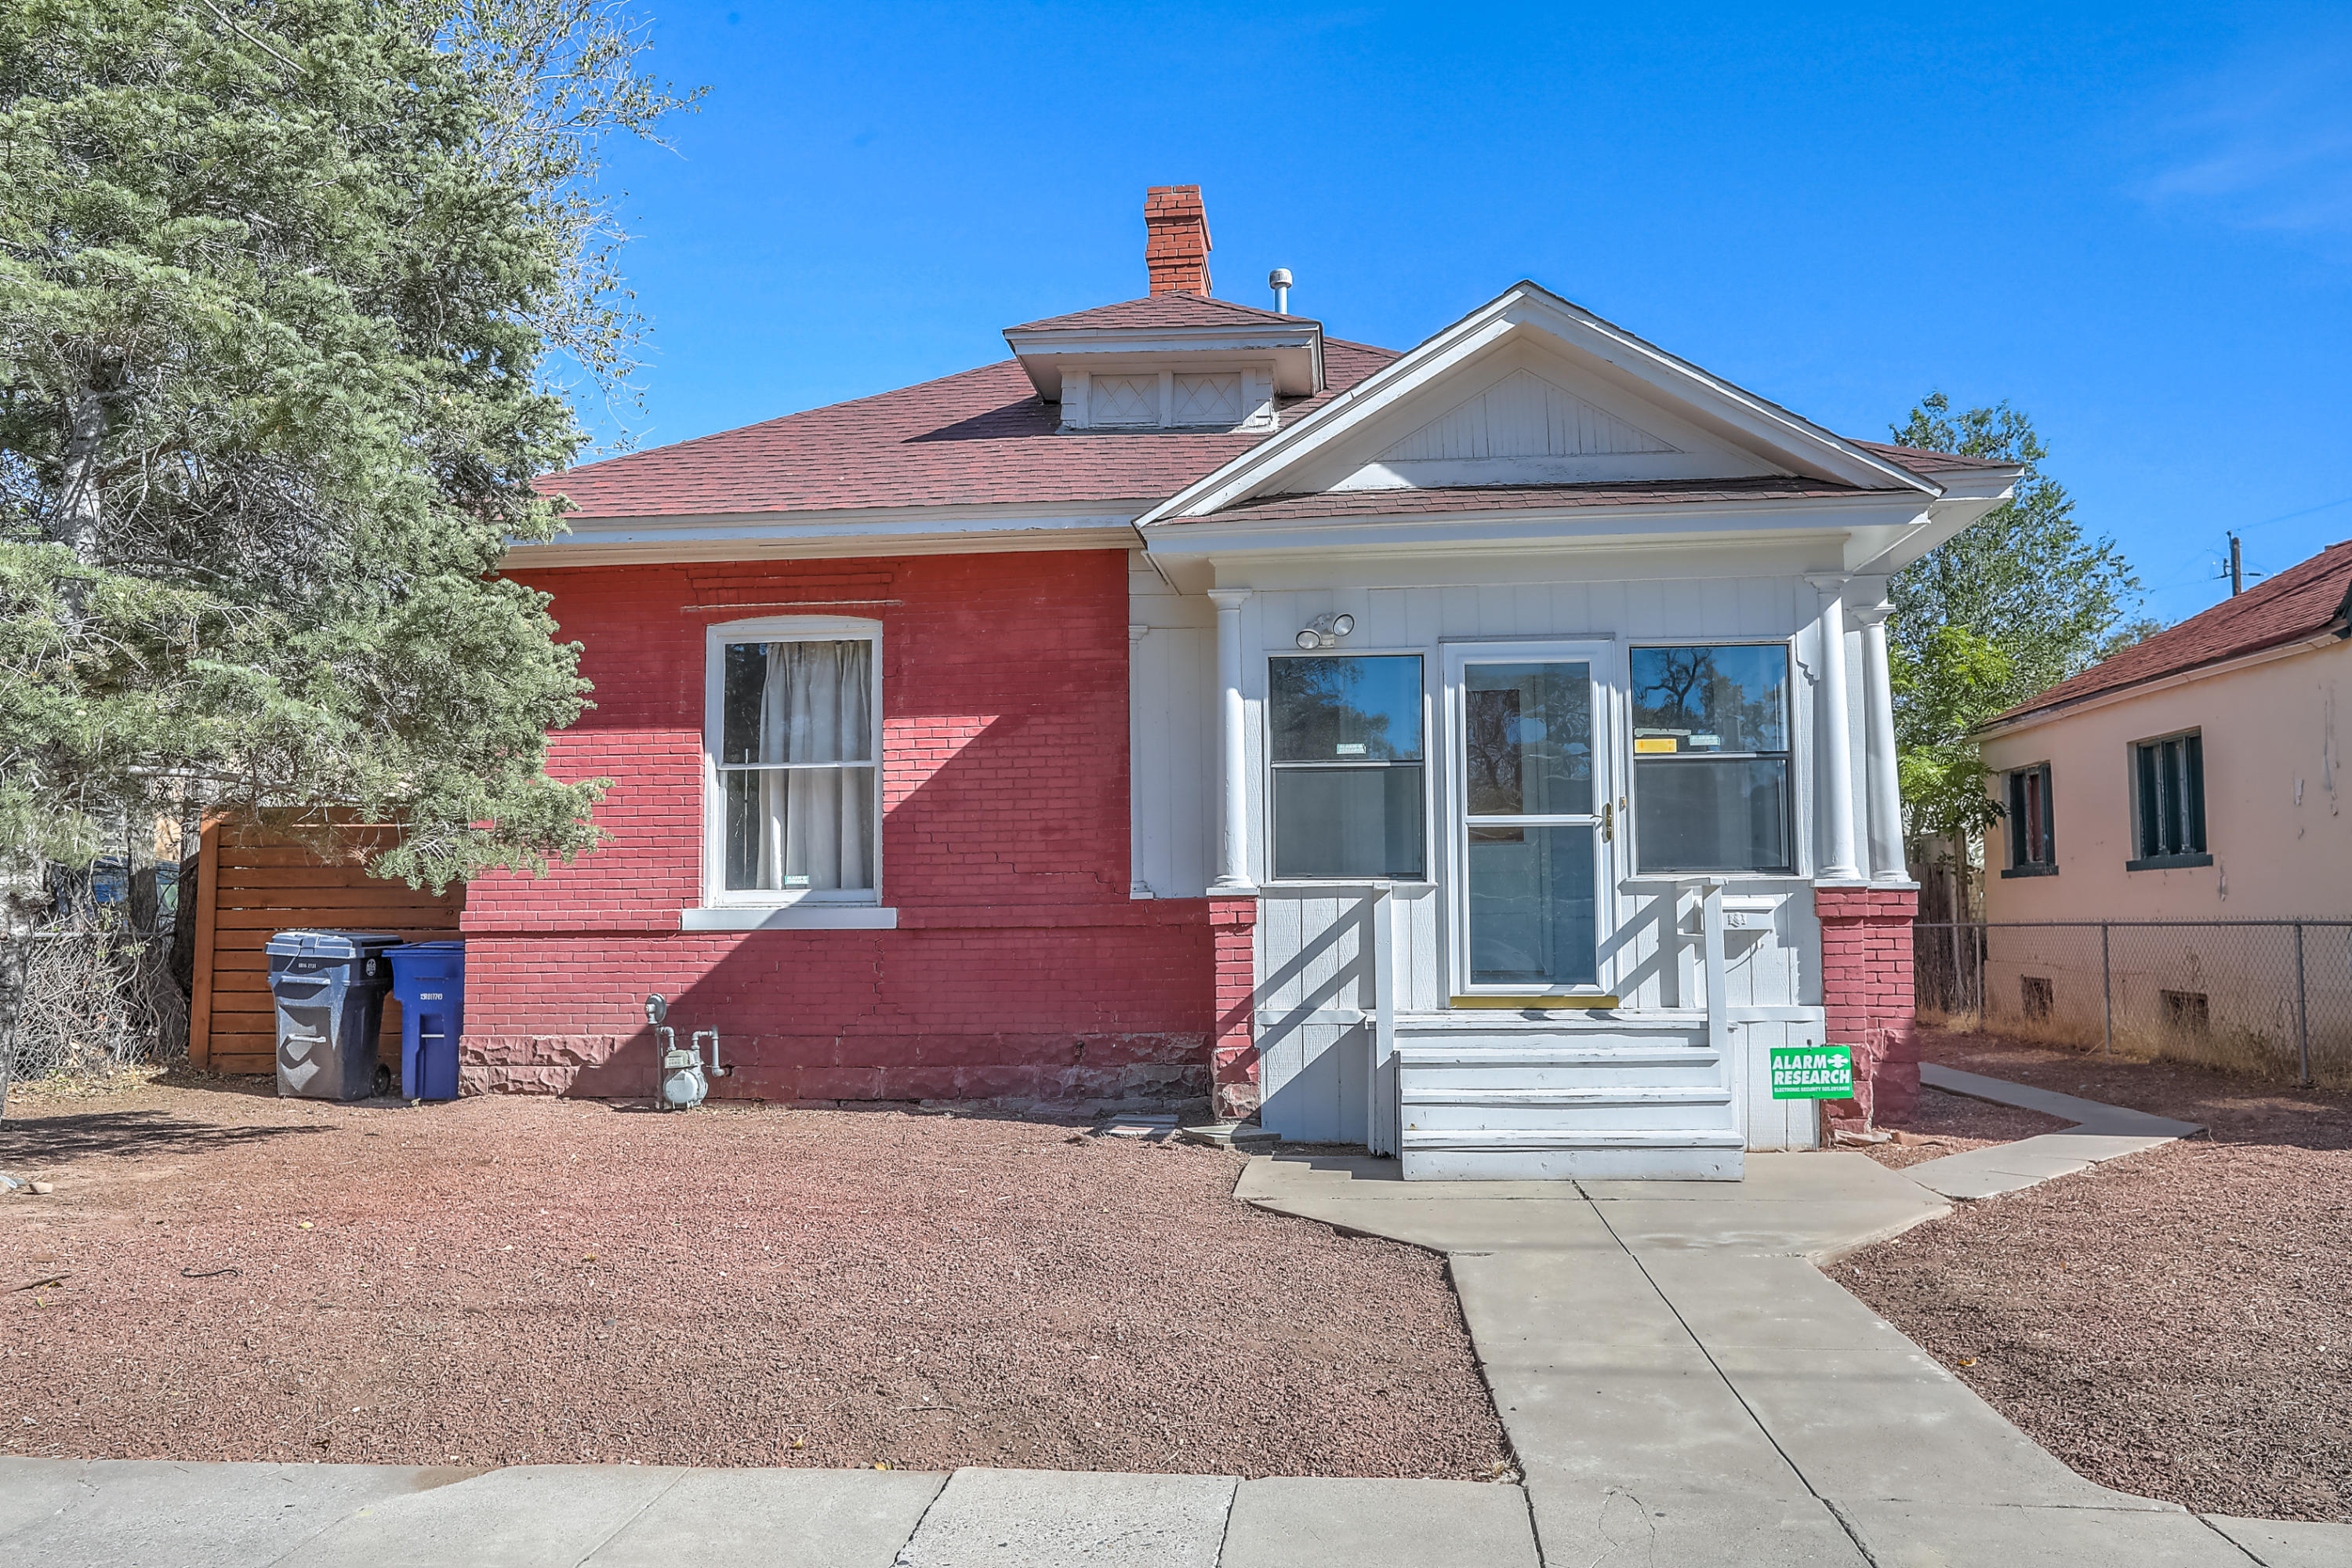 Charming Victorian home in the heart of downtown Albuquerque with easy access to Old Town.  Enclosed front porch, wood floors, high ceilings, brick exterior, claw foot tub. A sunroom/office off of one of the bedrooms and a mudroom/laundry room at the back of the home that could have many uses. Refrigerated air and CFA heat. Newer backyard fencing with gate and plenty of backyard space for all your outdoor entertainment. Home is being sold ''as is.''